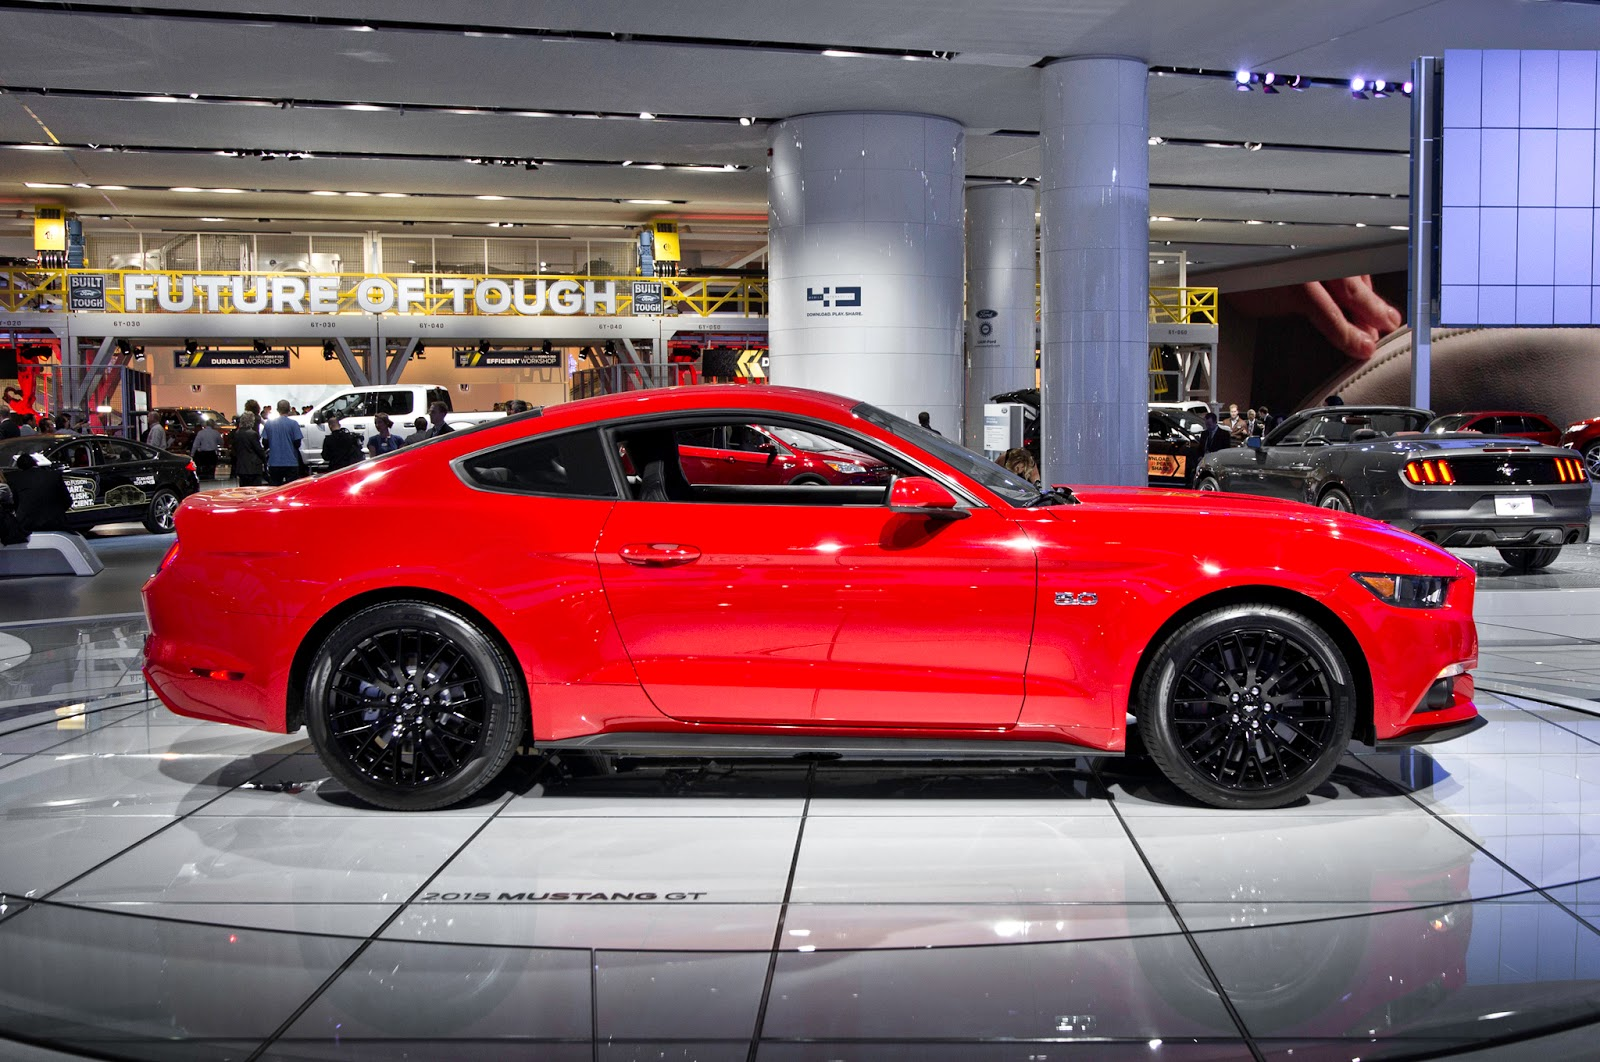 and then show this mustang 2015 black and red